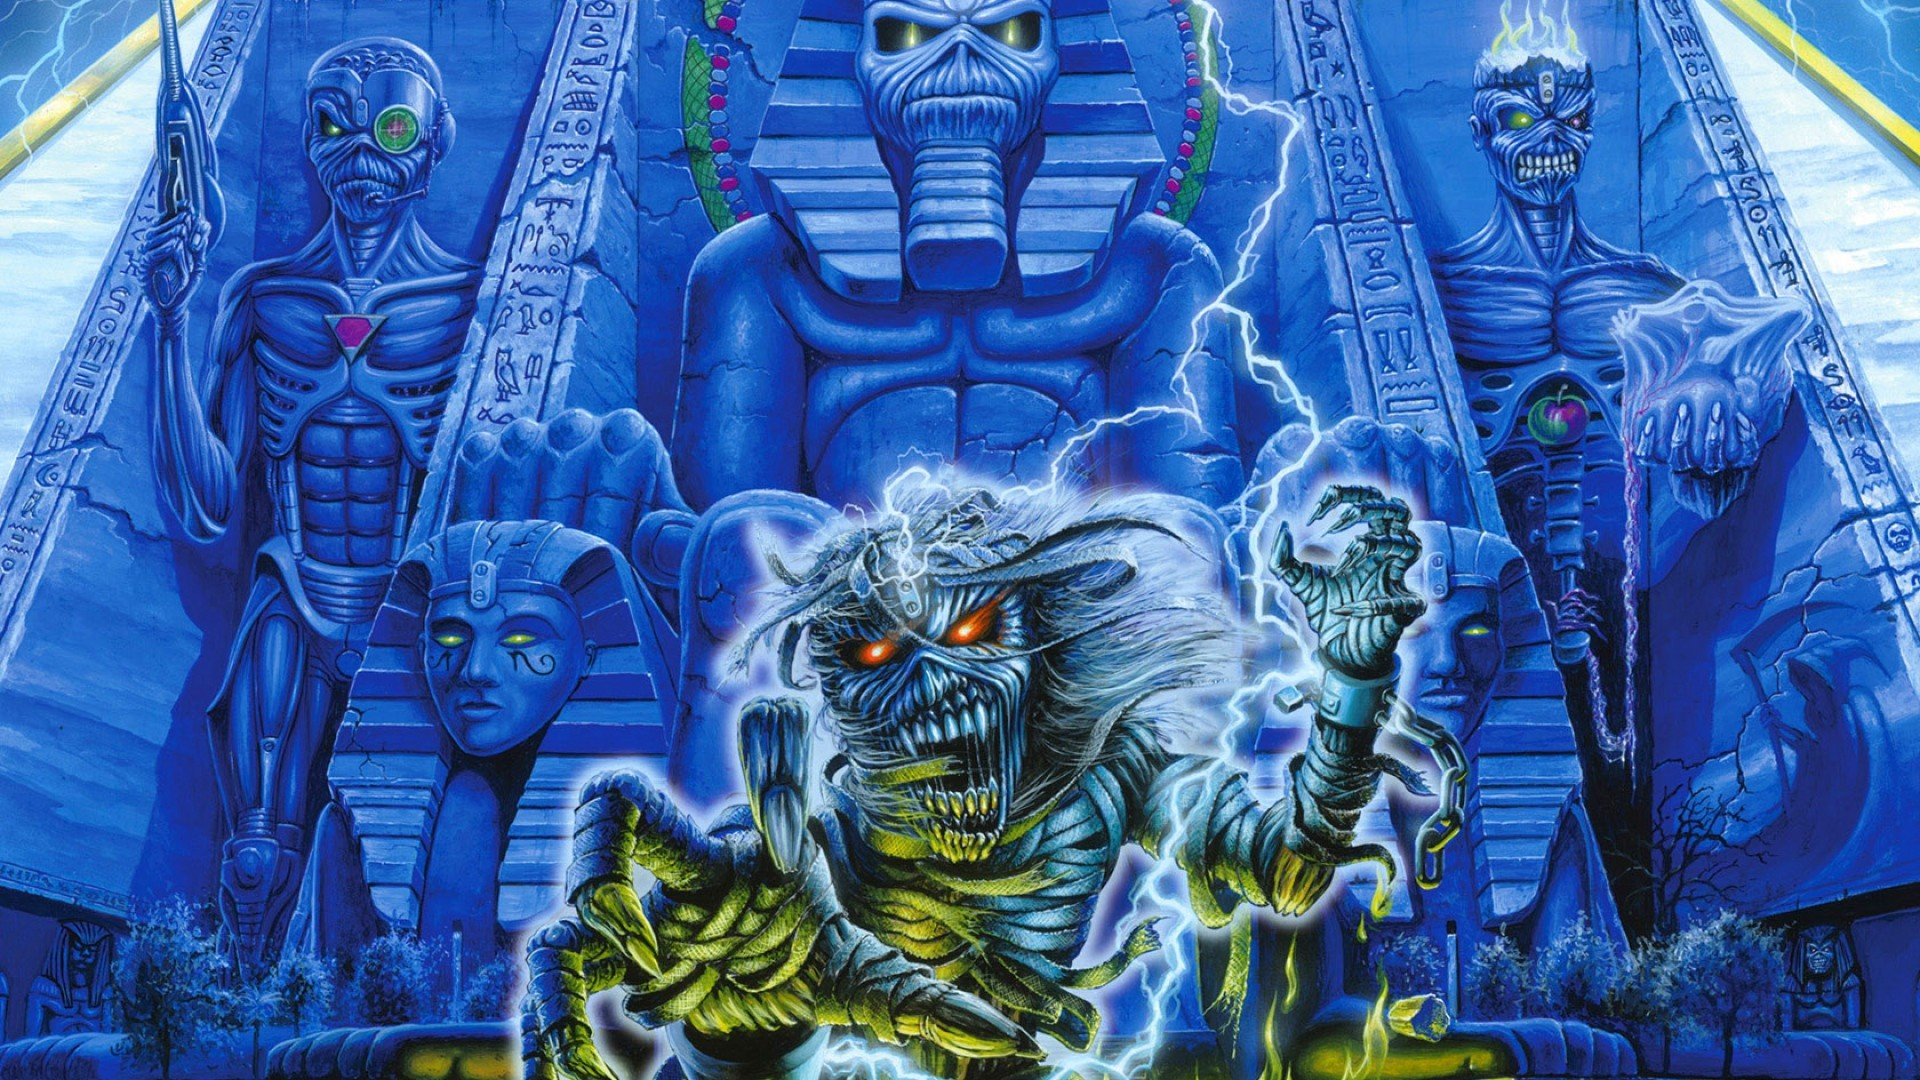 iron maiden, undead, egypt